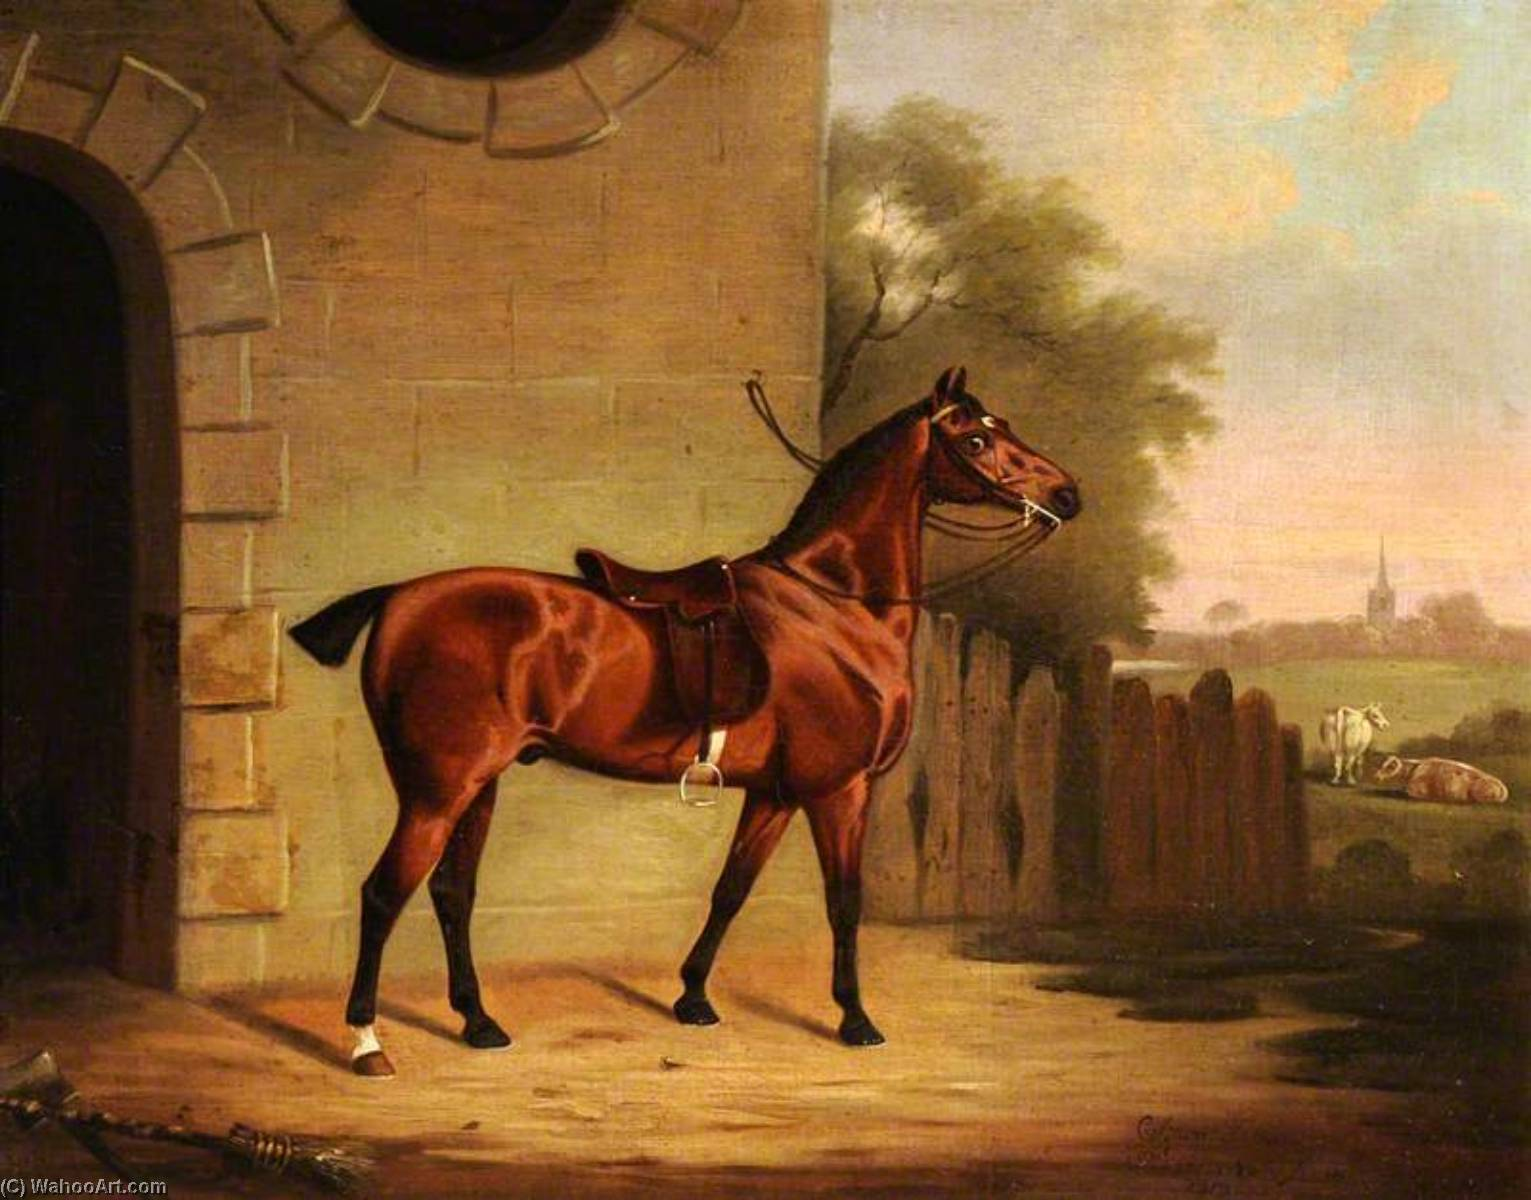 A Saddled Bay Hunter outside a Stable Entrance, 1810 by Clifton Tomson | Famous Paintings Reproductions | WahooArt.com